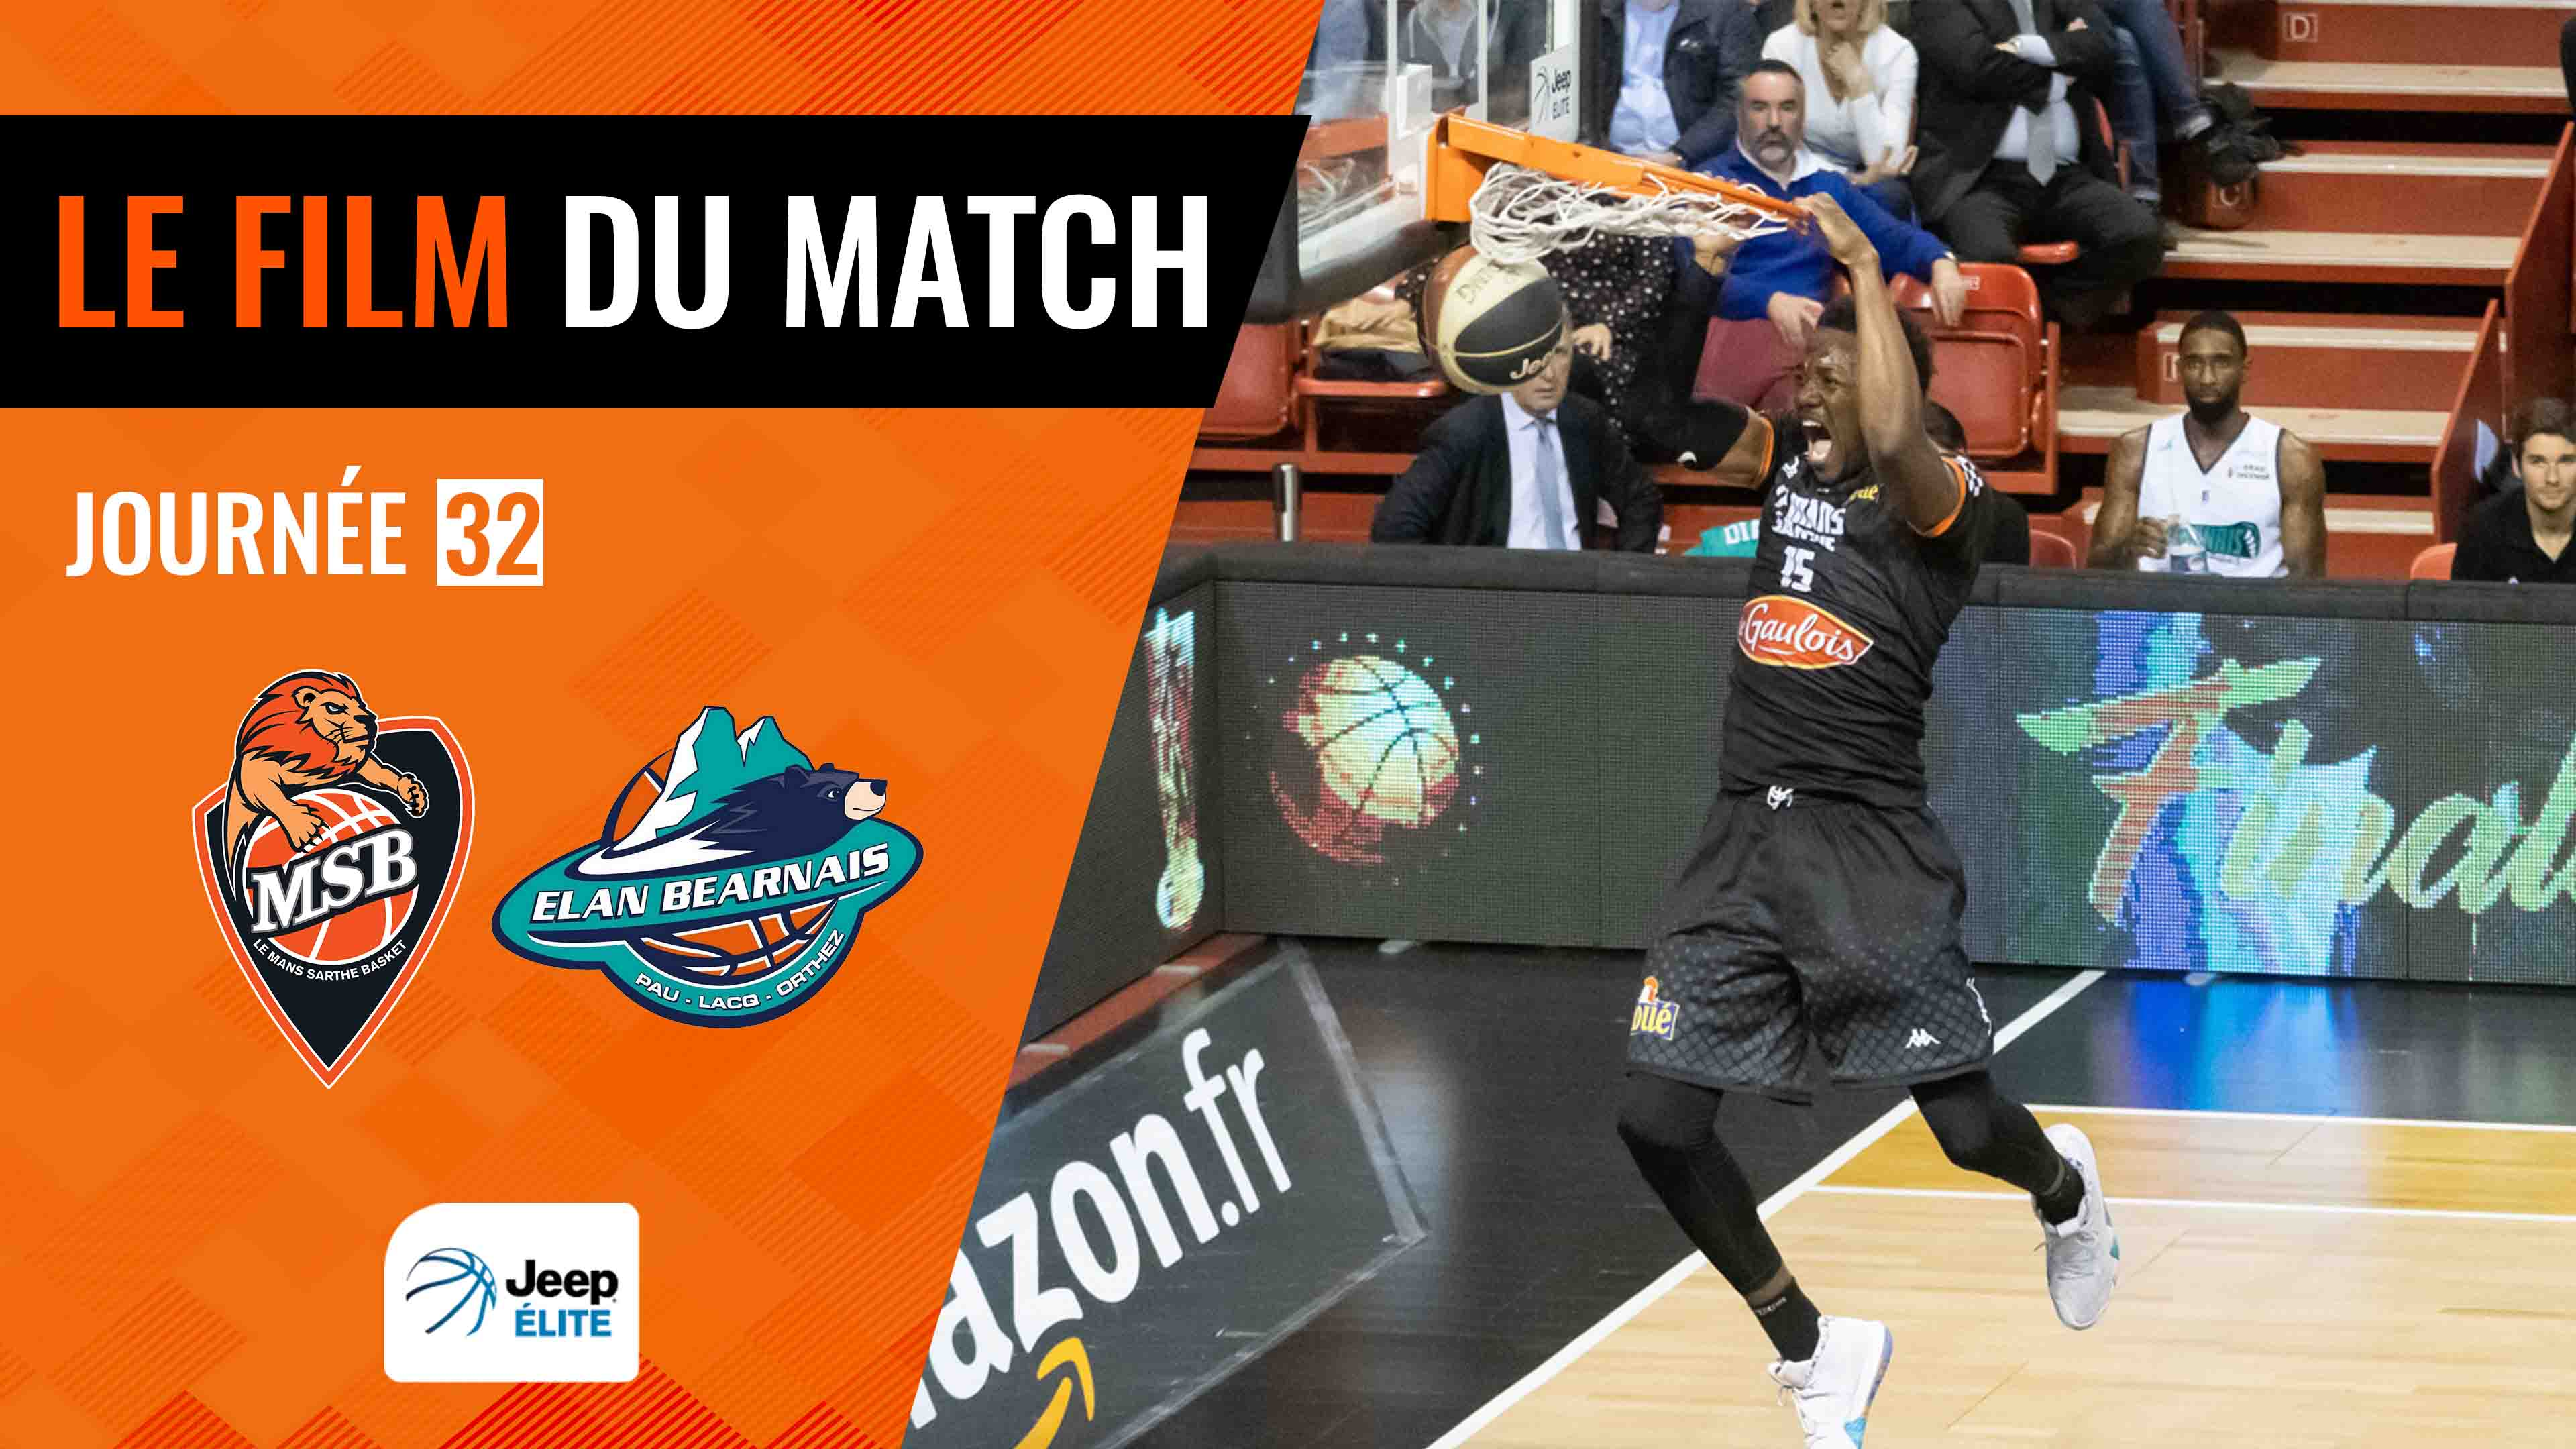 MSB vs. Pau-Lacq-Orthez | Le film du match